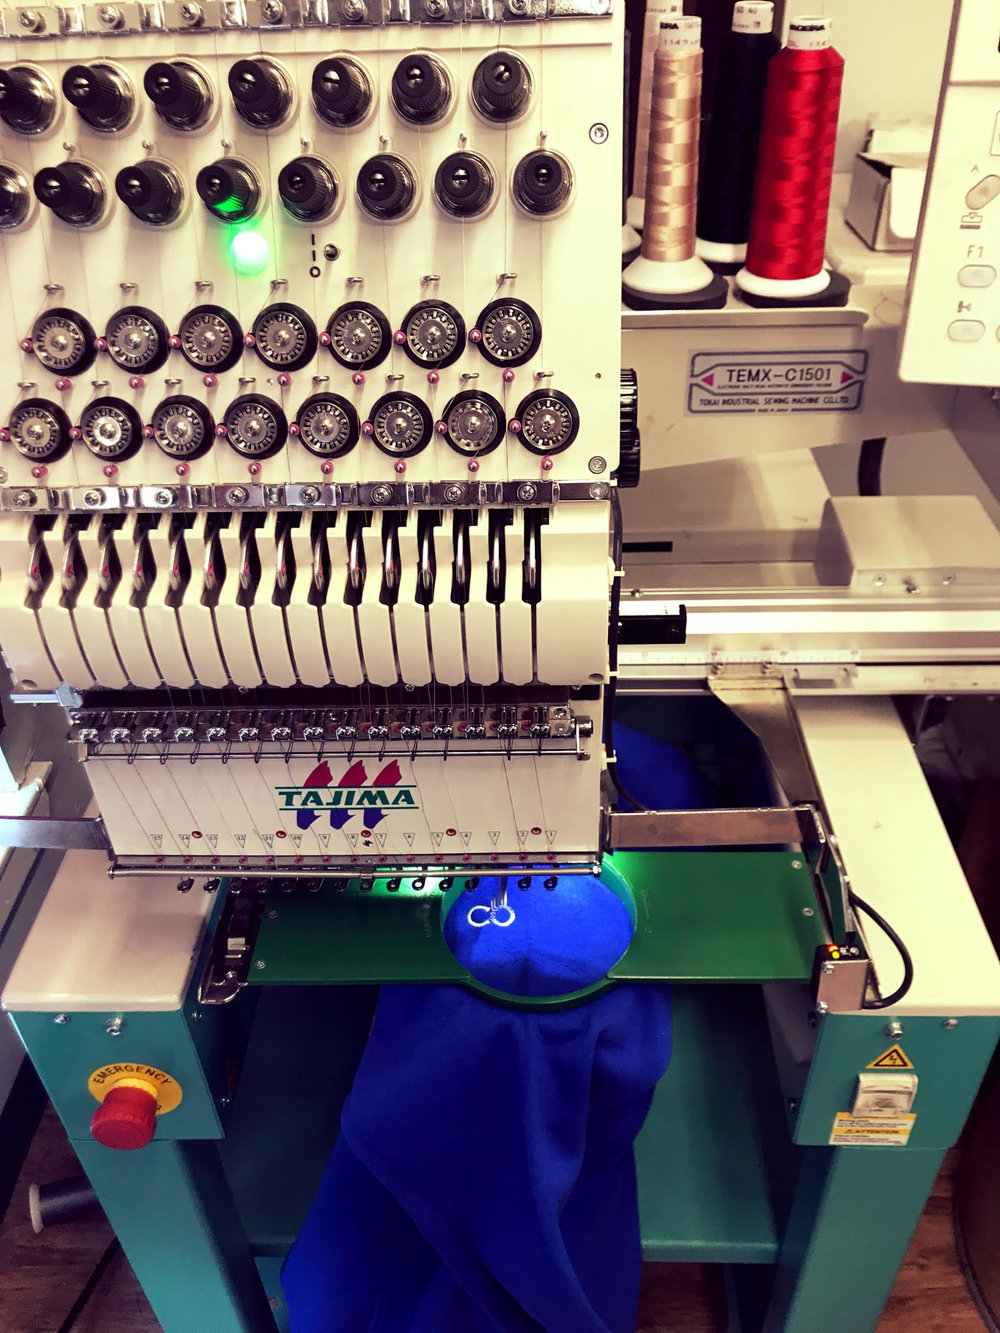 Our 1 head machine specializes in personalization!